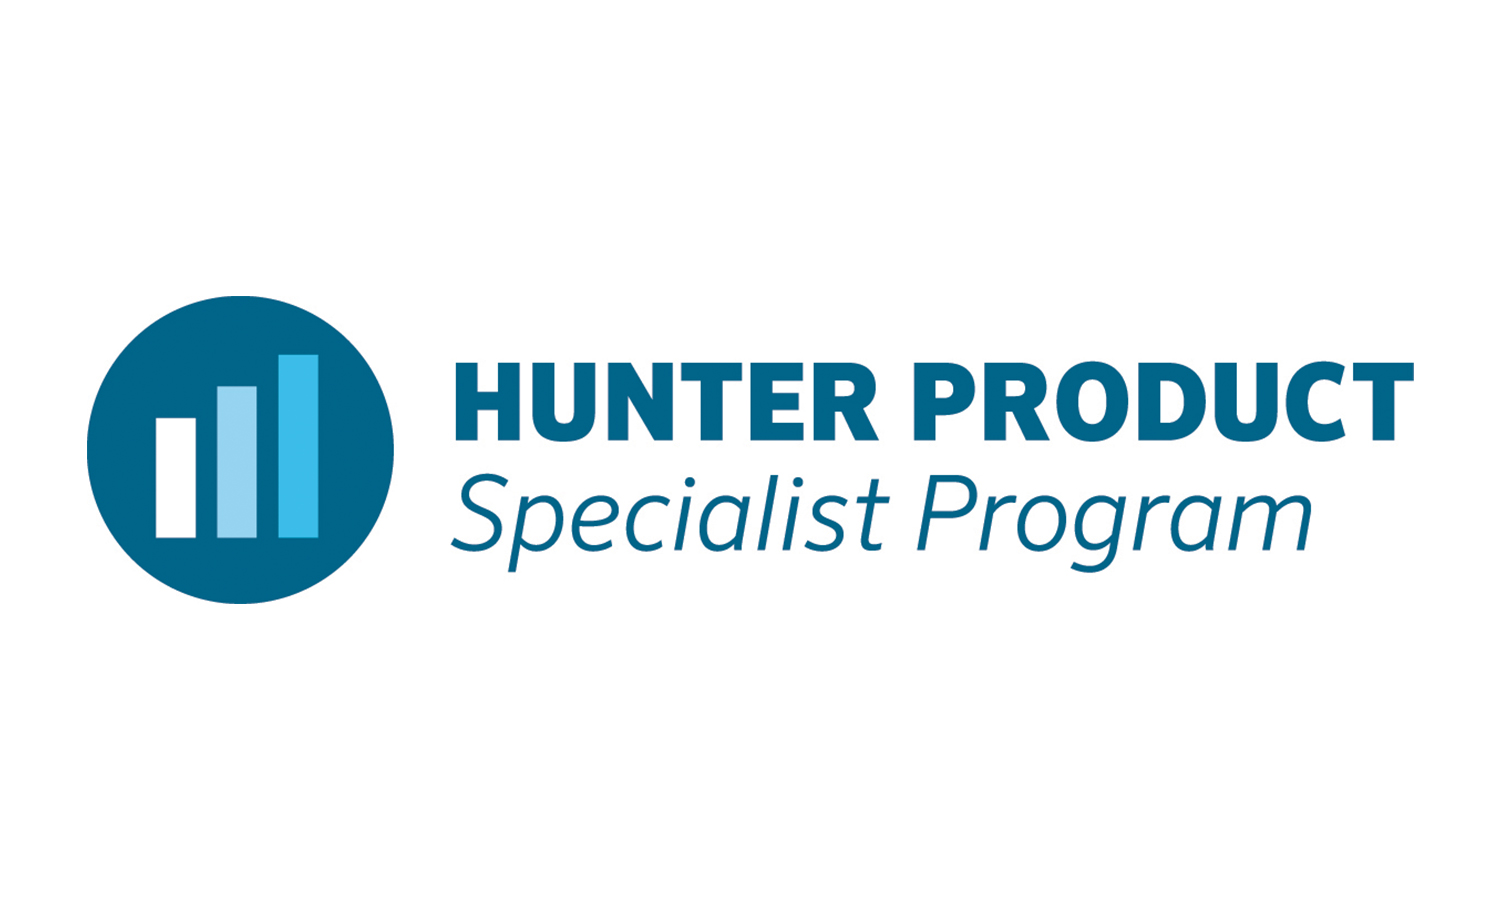 HunterProducts